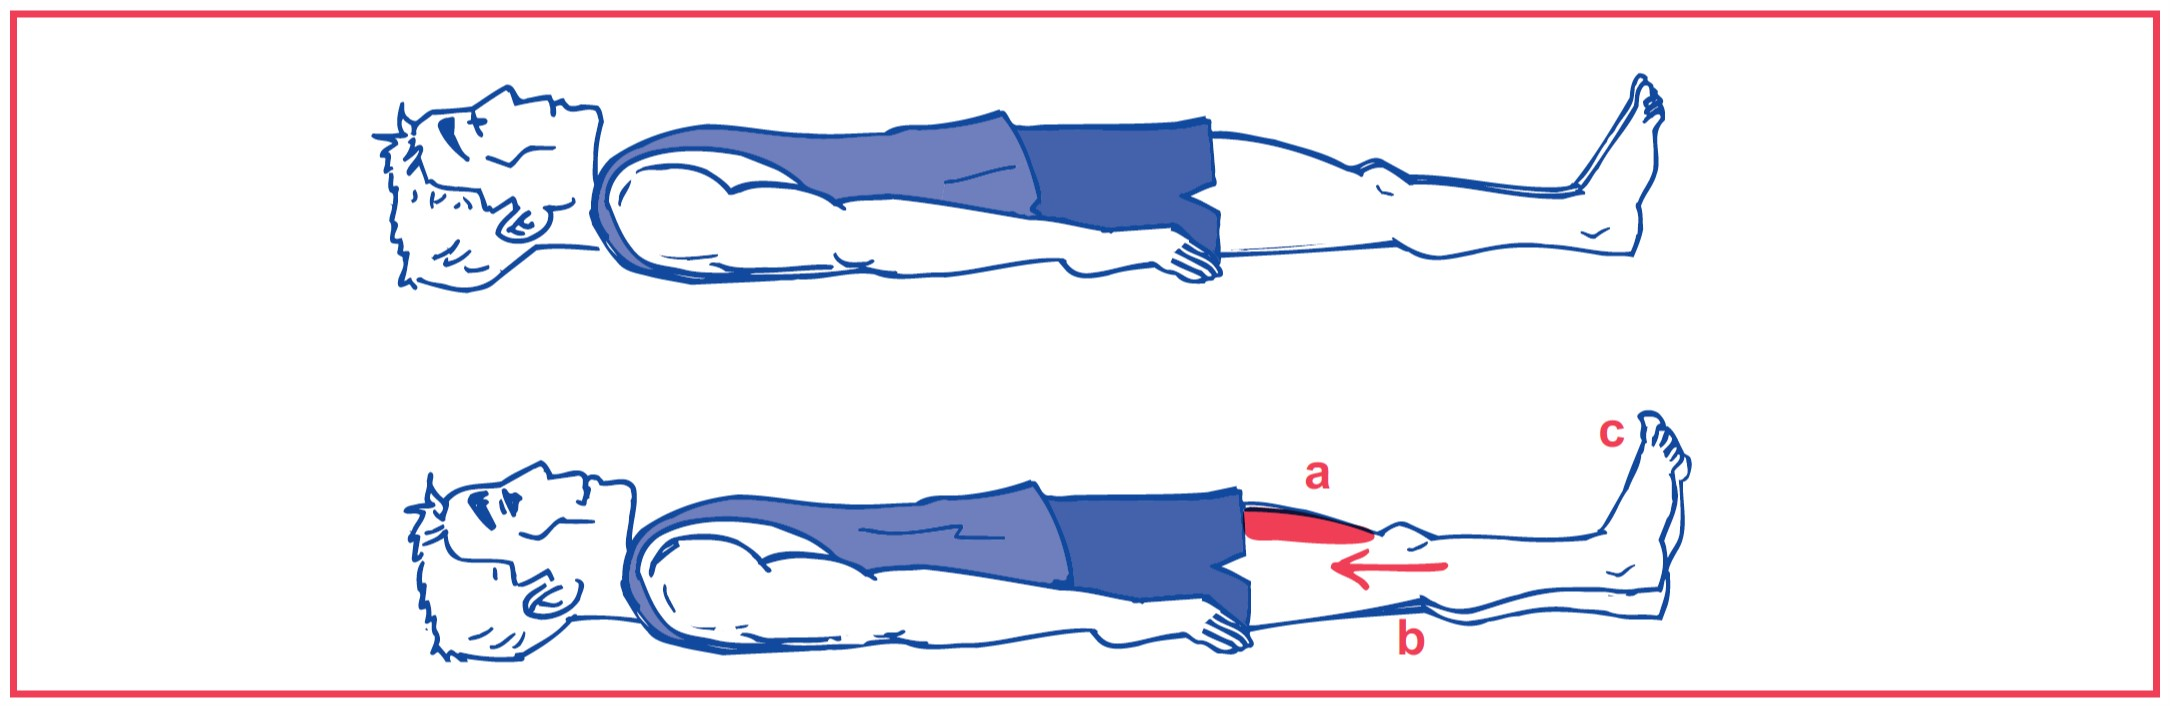 1. Static contractions of quadriceps muscle (knee extension muscle)